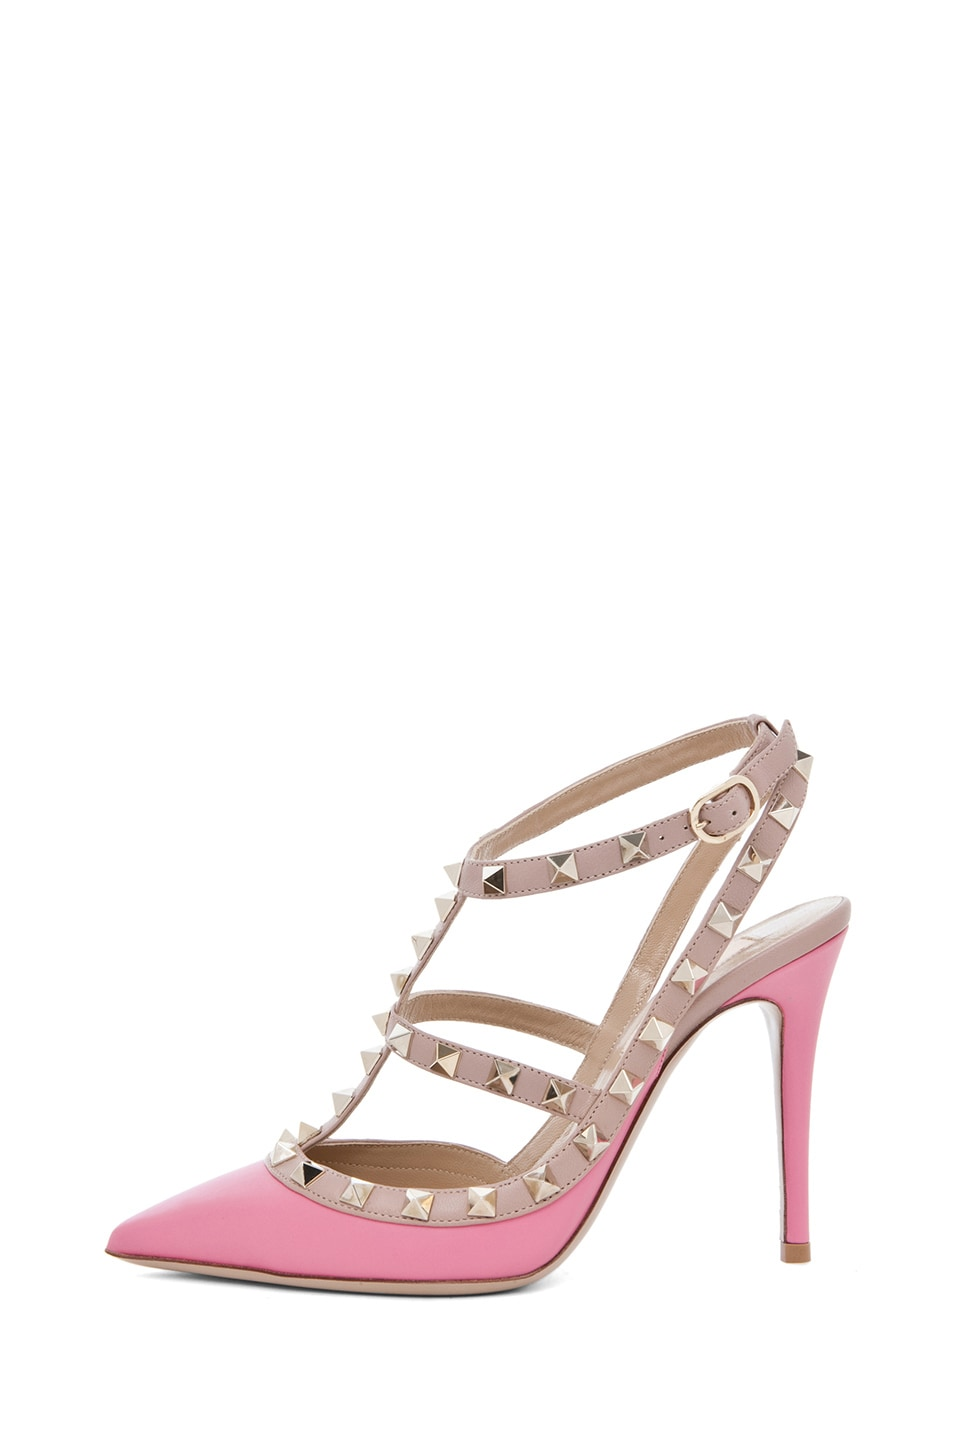 Image 1 of Valentino Rockstud Sling Back T.100 in Passion